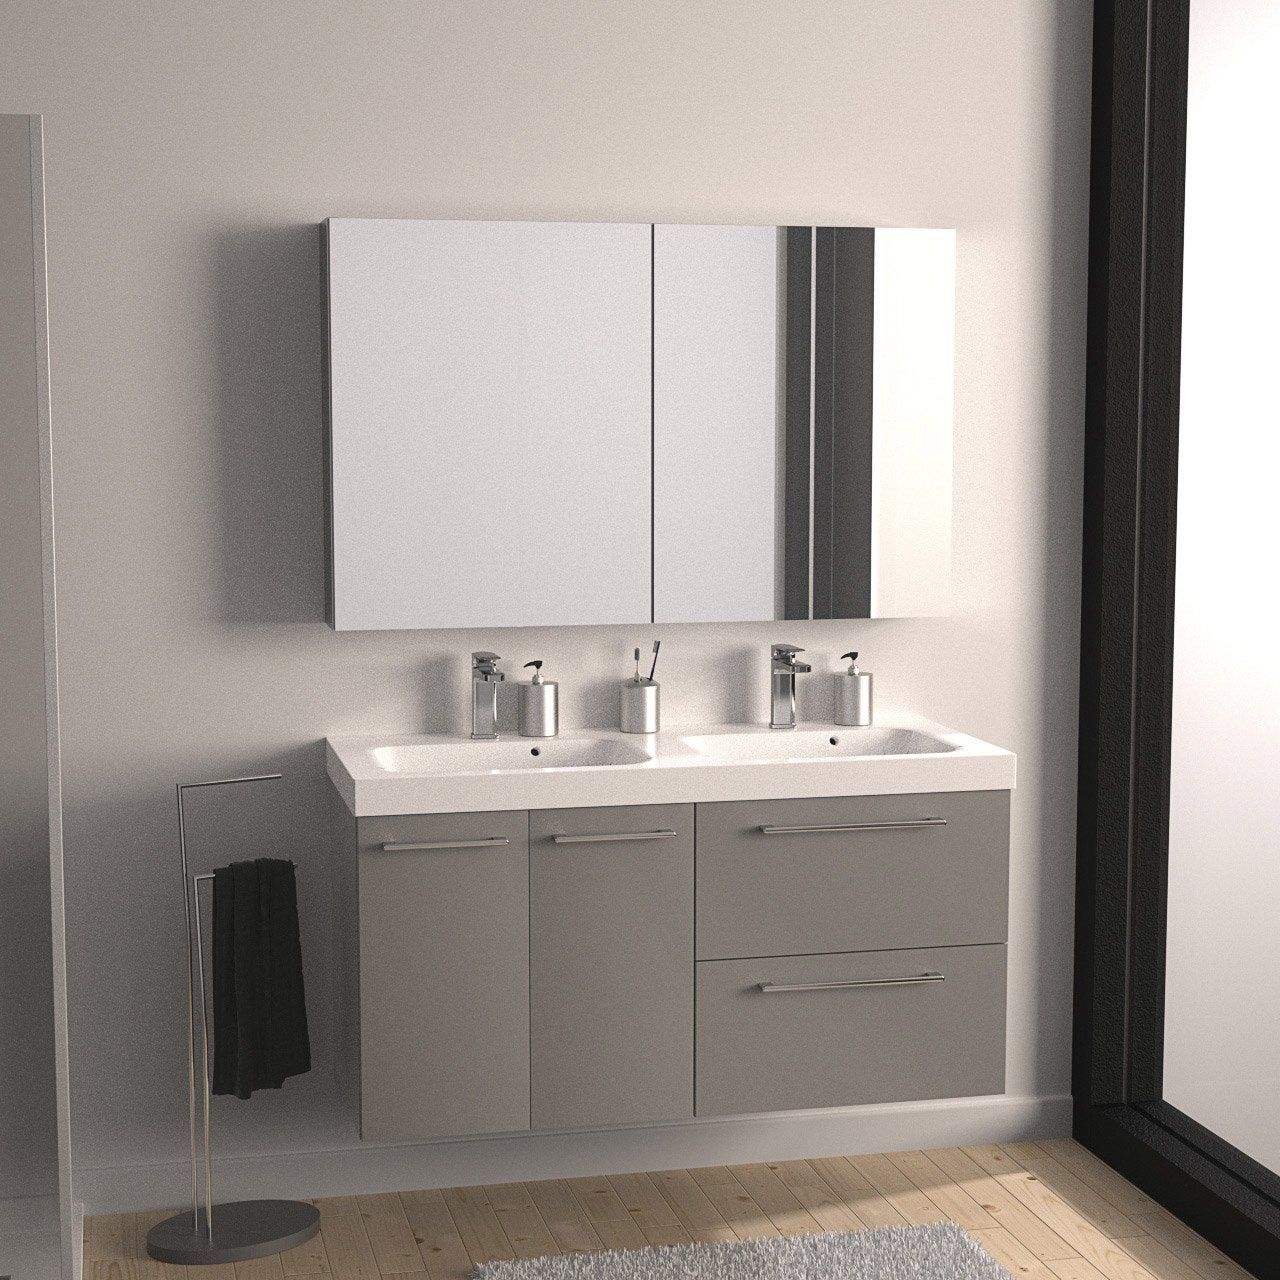 meuble de salle de bains remix gris galet n 3. Black Bedroom Furniture Sets. Home Design Ideas